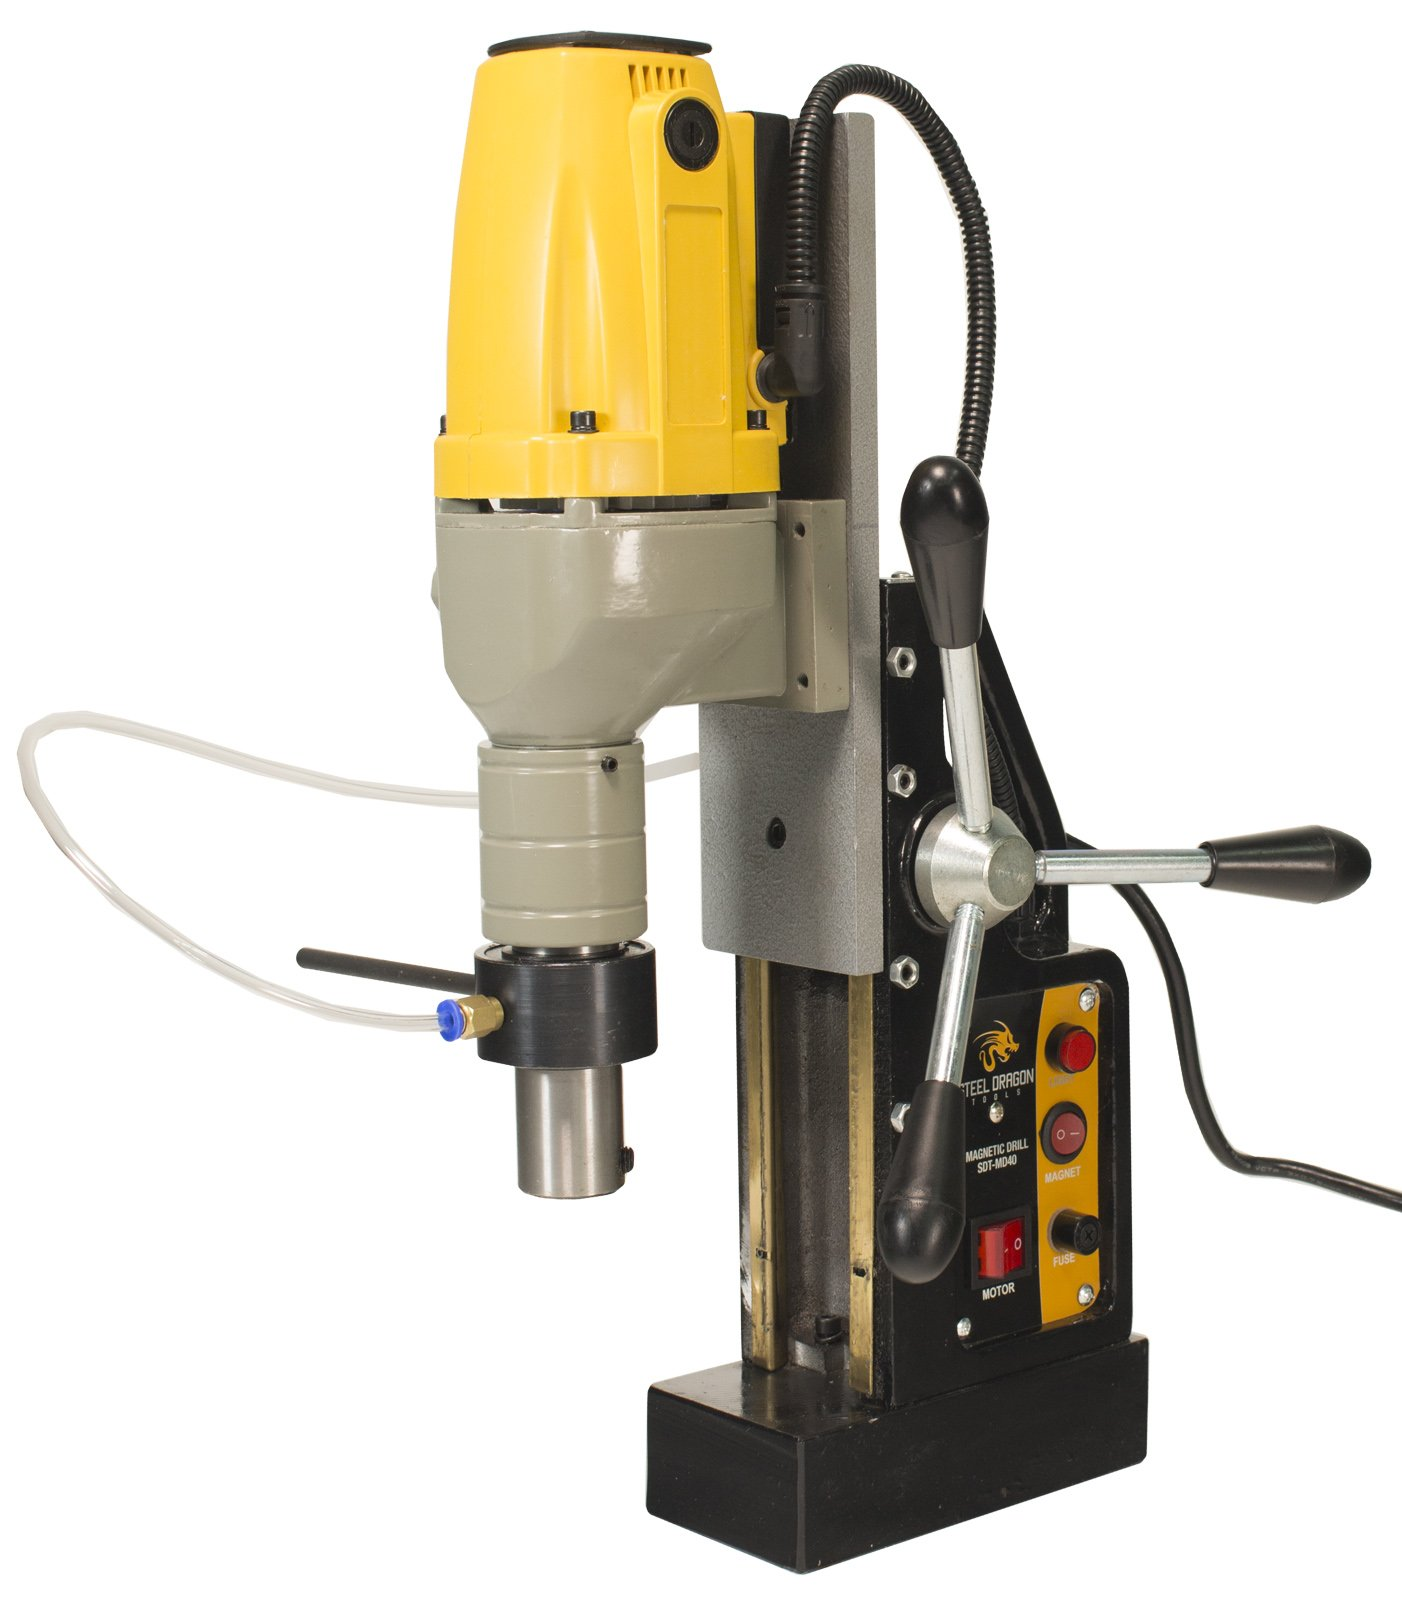 Steel Dragon Tools MD40 Magnetic Drill Press with 1-1/2'' Boring Diameter & 2700lb Magnetic Force by Steel Dragon Tools (Image #8)